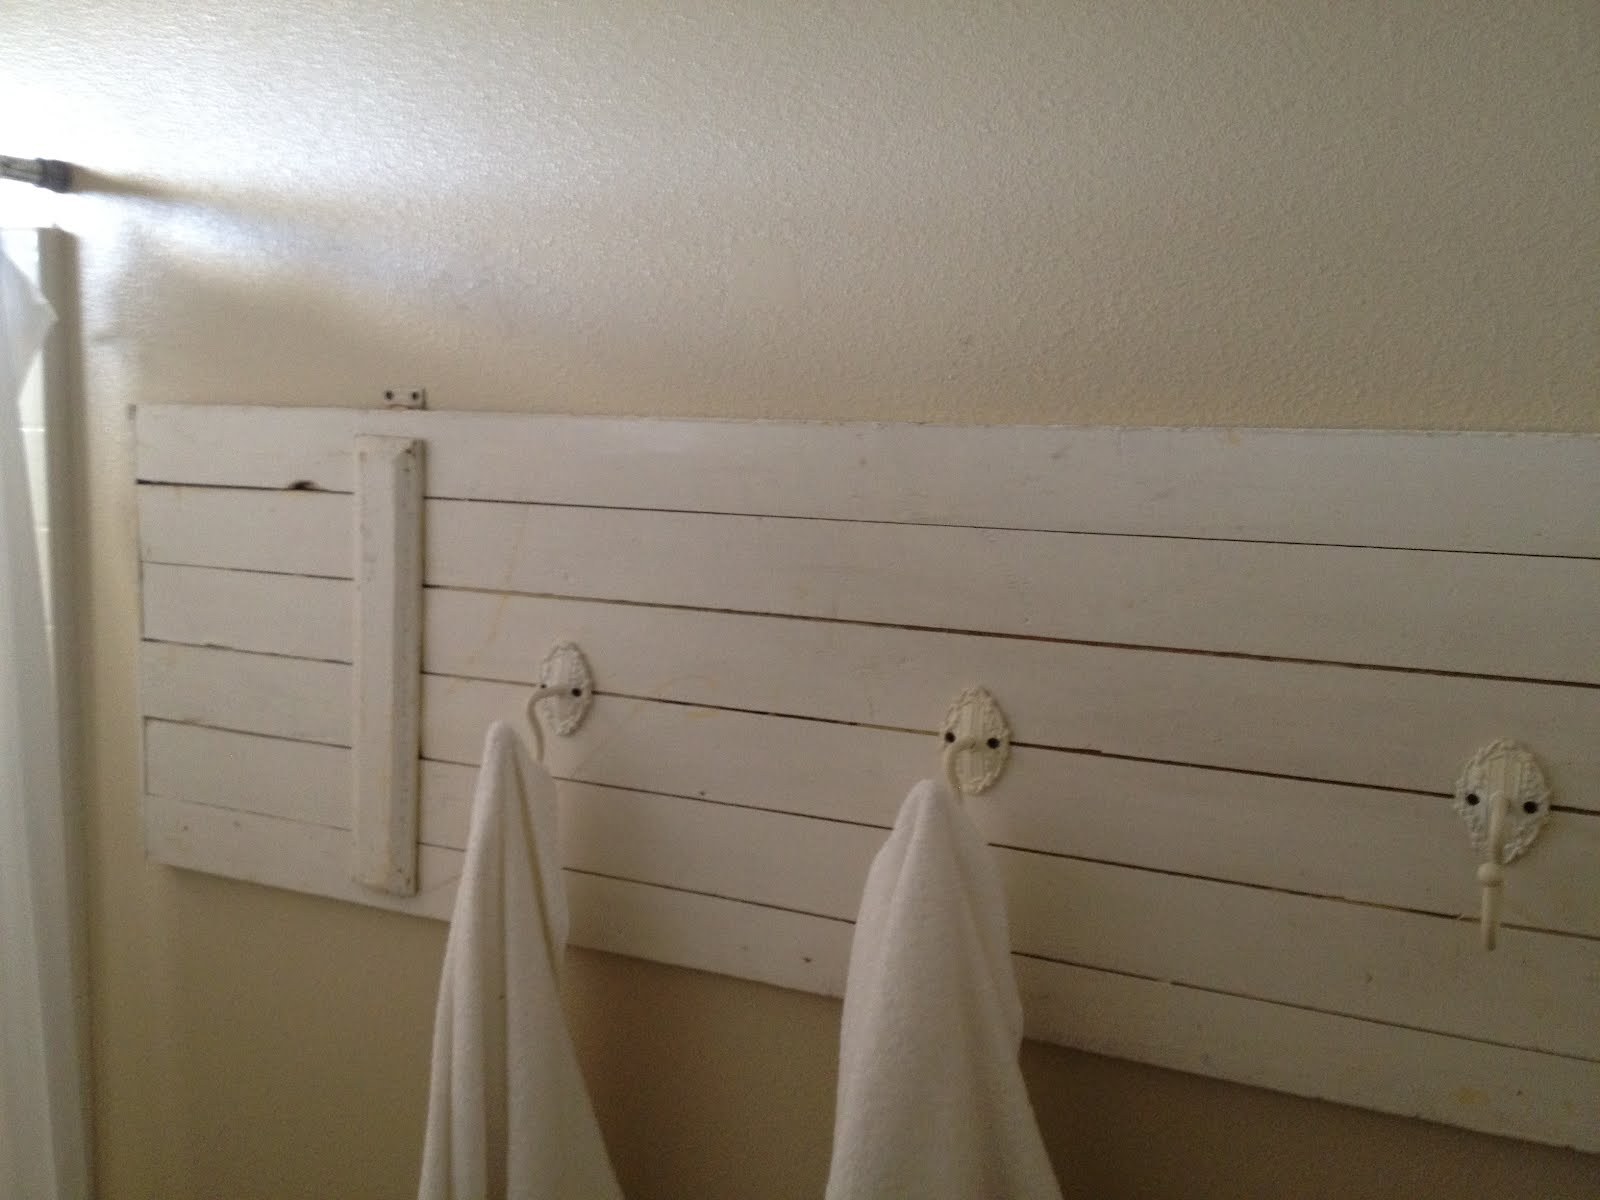 Simple Arrange The Towels In Your Bathroom (Image 8 of 10)